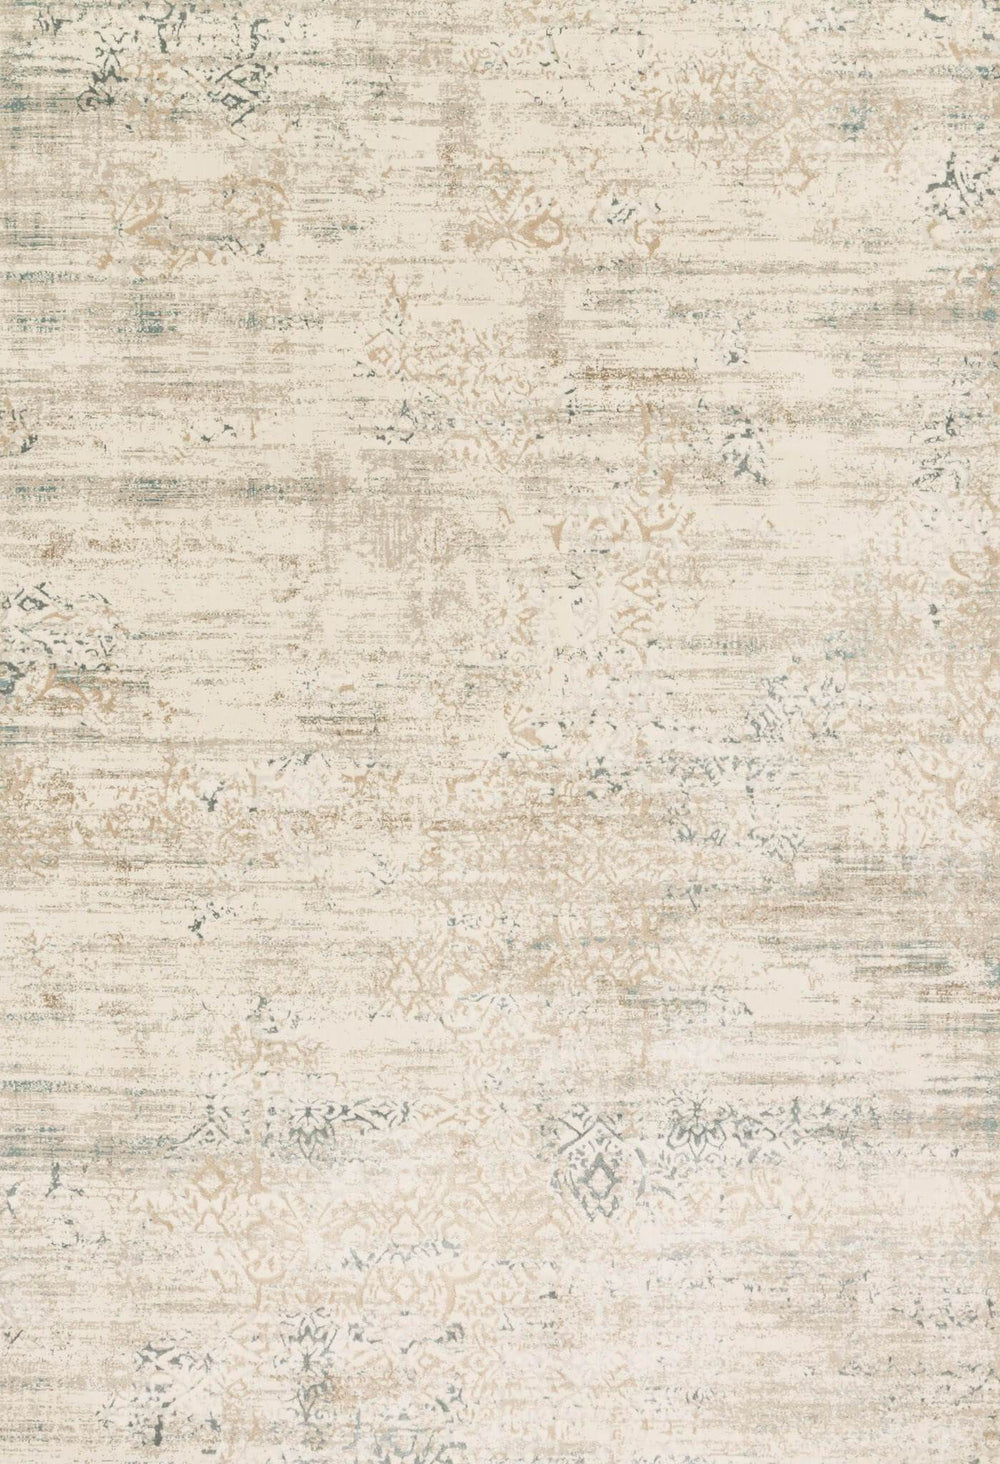 Loloi Rug Kingston KT-02 Ivory/Stone - Accessories - Rugs - Loloi Rugs